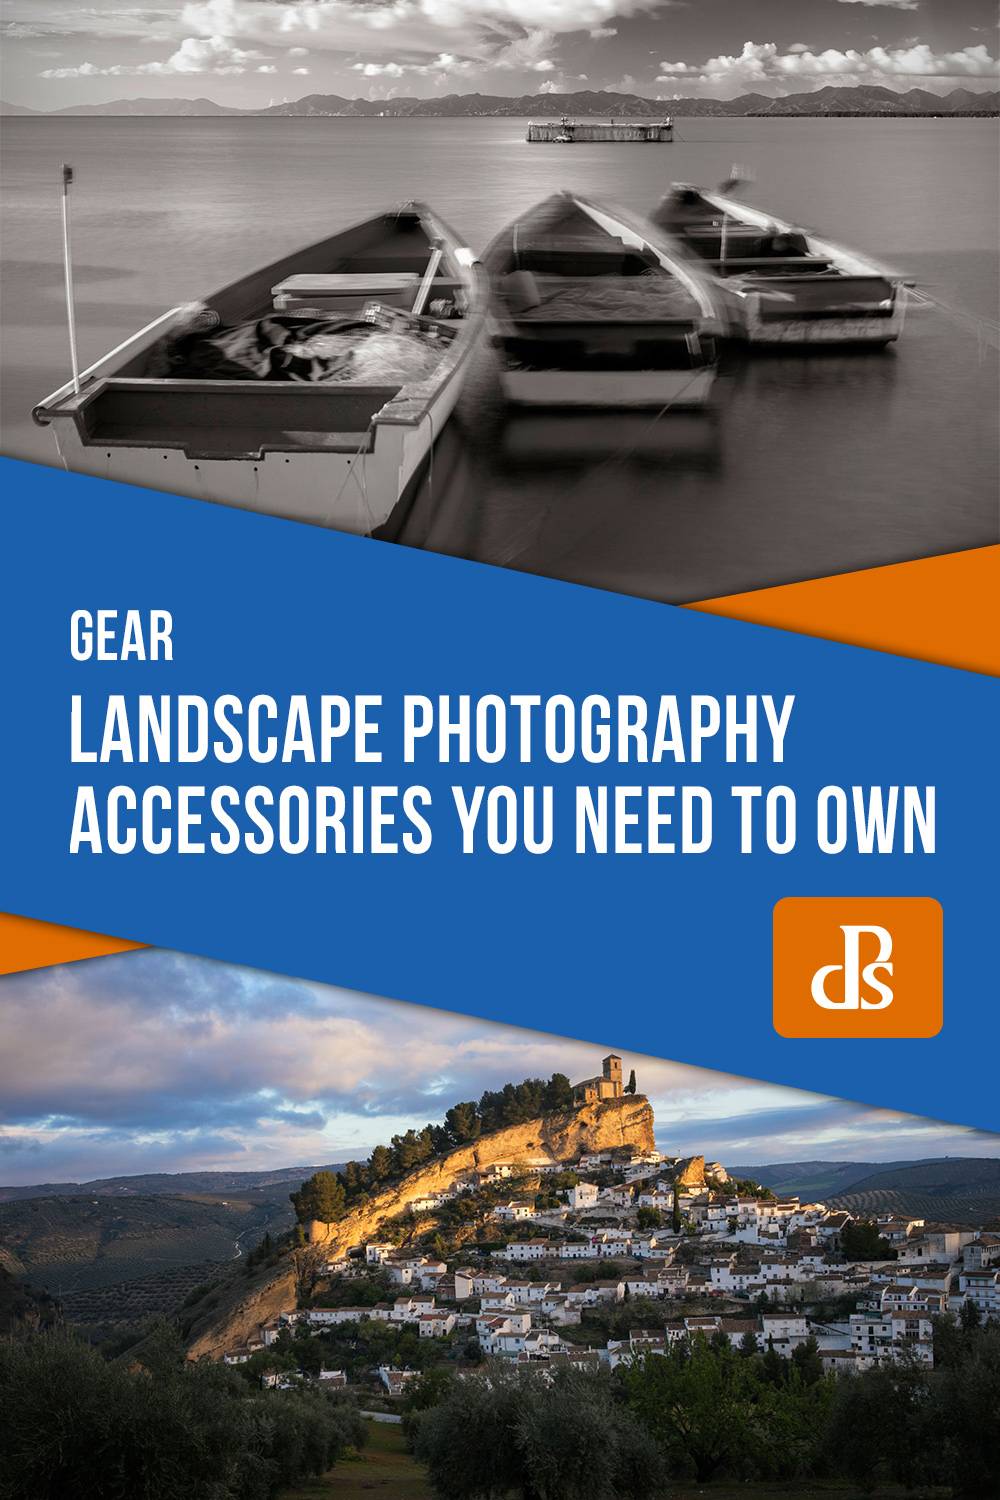 Landscape Photography Accessories You Need to Own